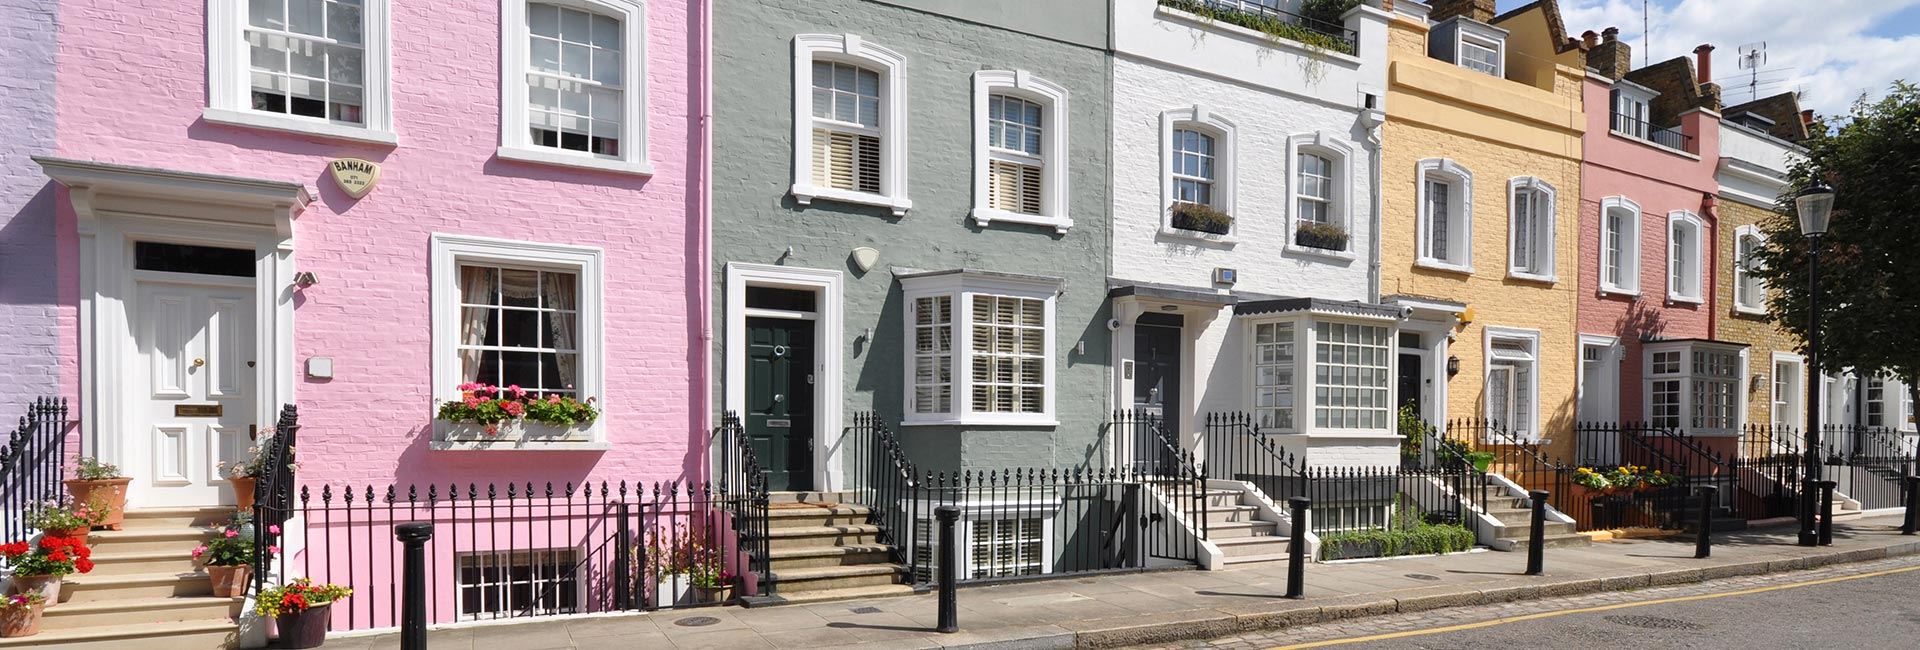 Row of brightly coloured houses. Review on the UK lettings market